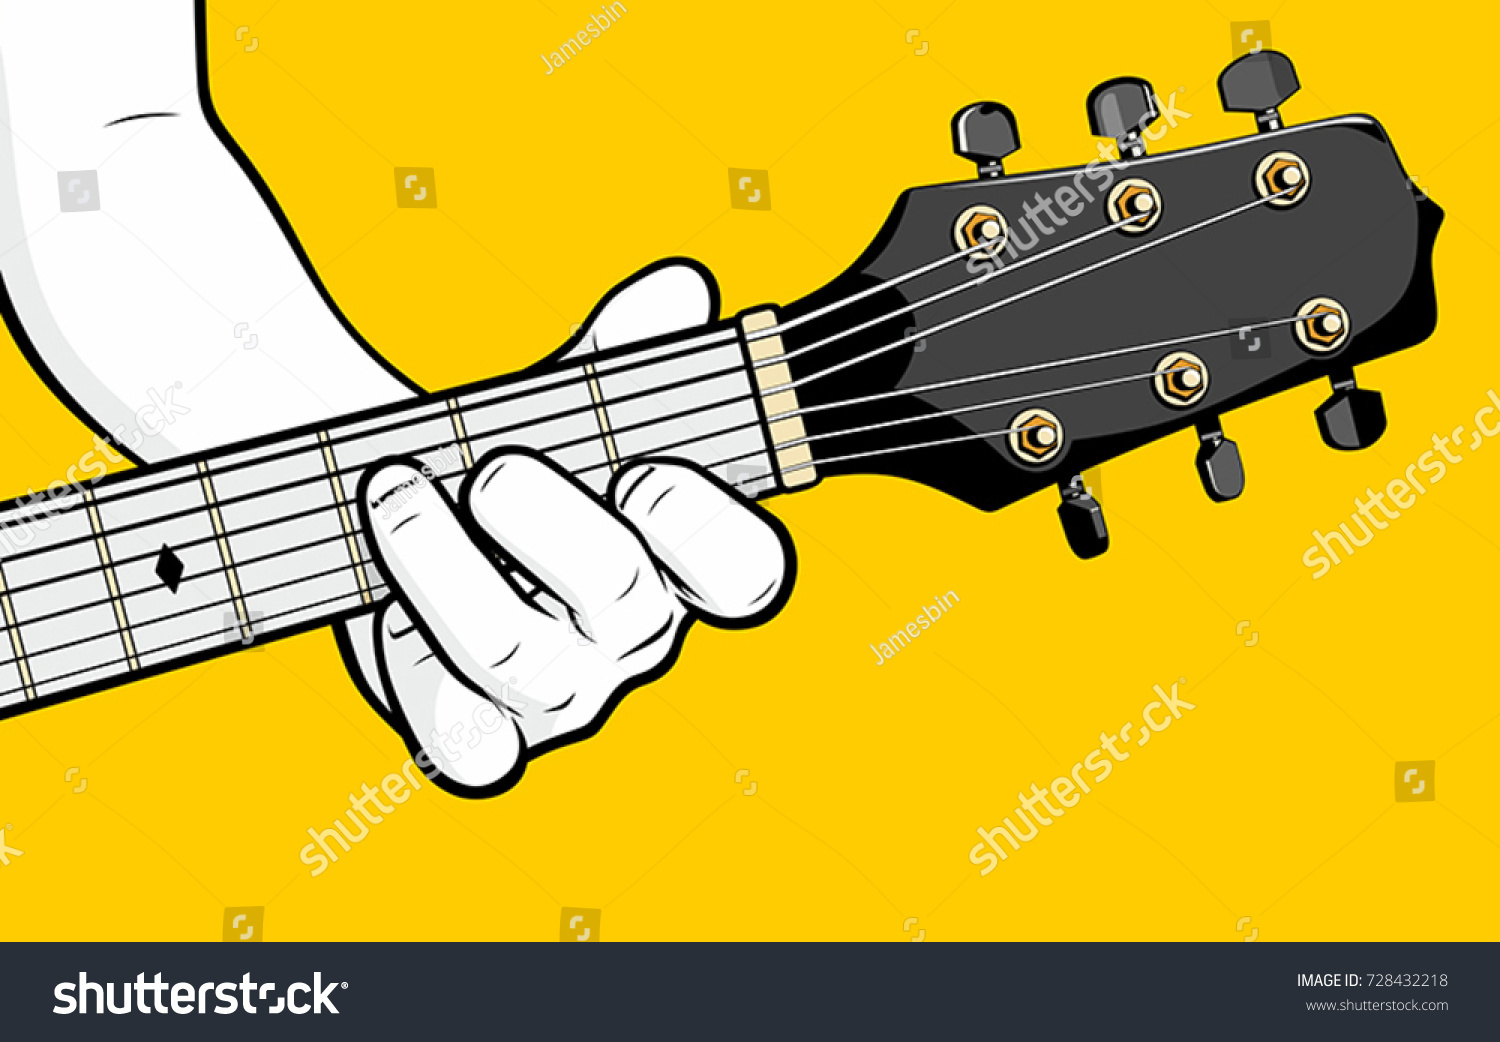 Guitar Player Hand Playing F Chord Stock Vector 2018 728432218